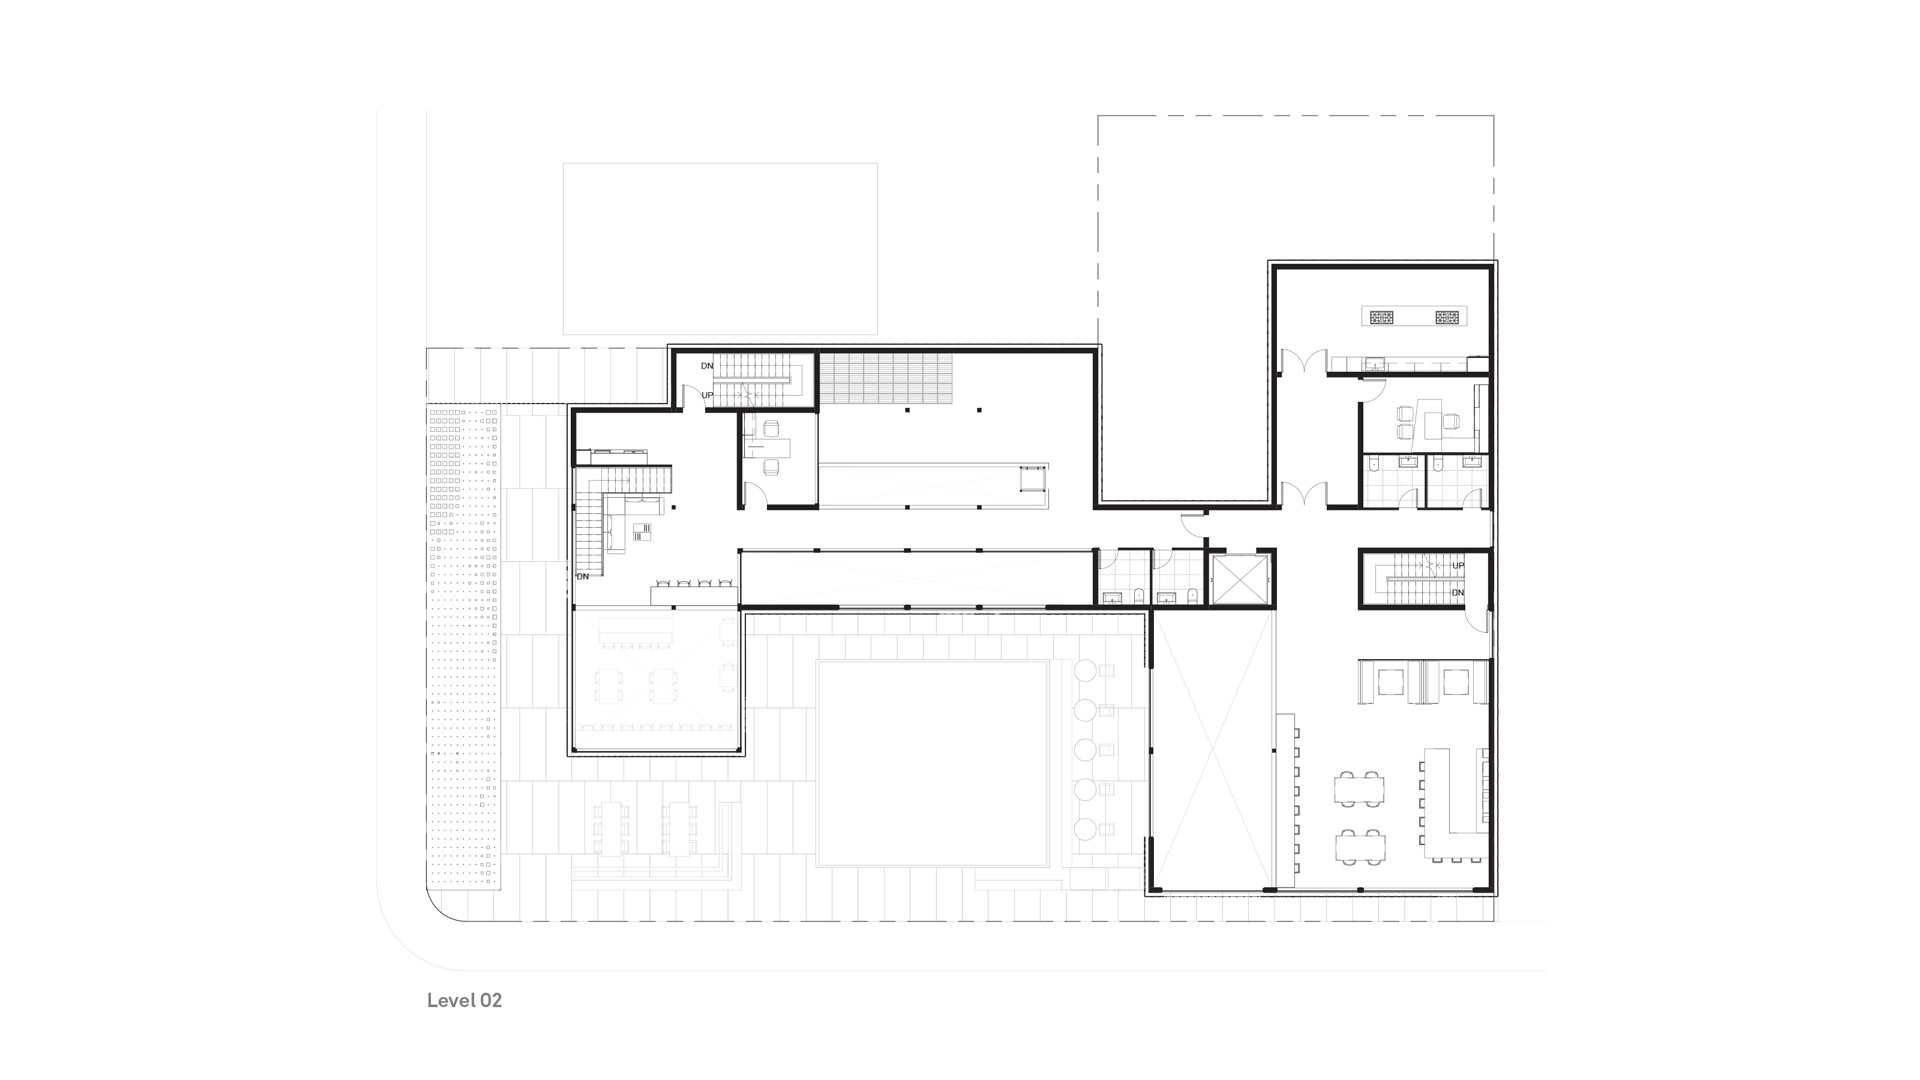 C7 Hotel + Brewery - Level 02 Plan — Timothy Mandody